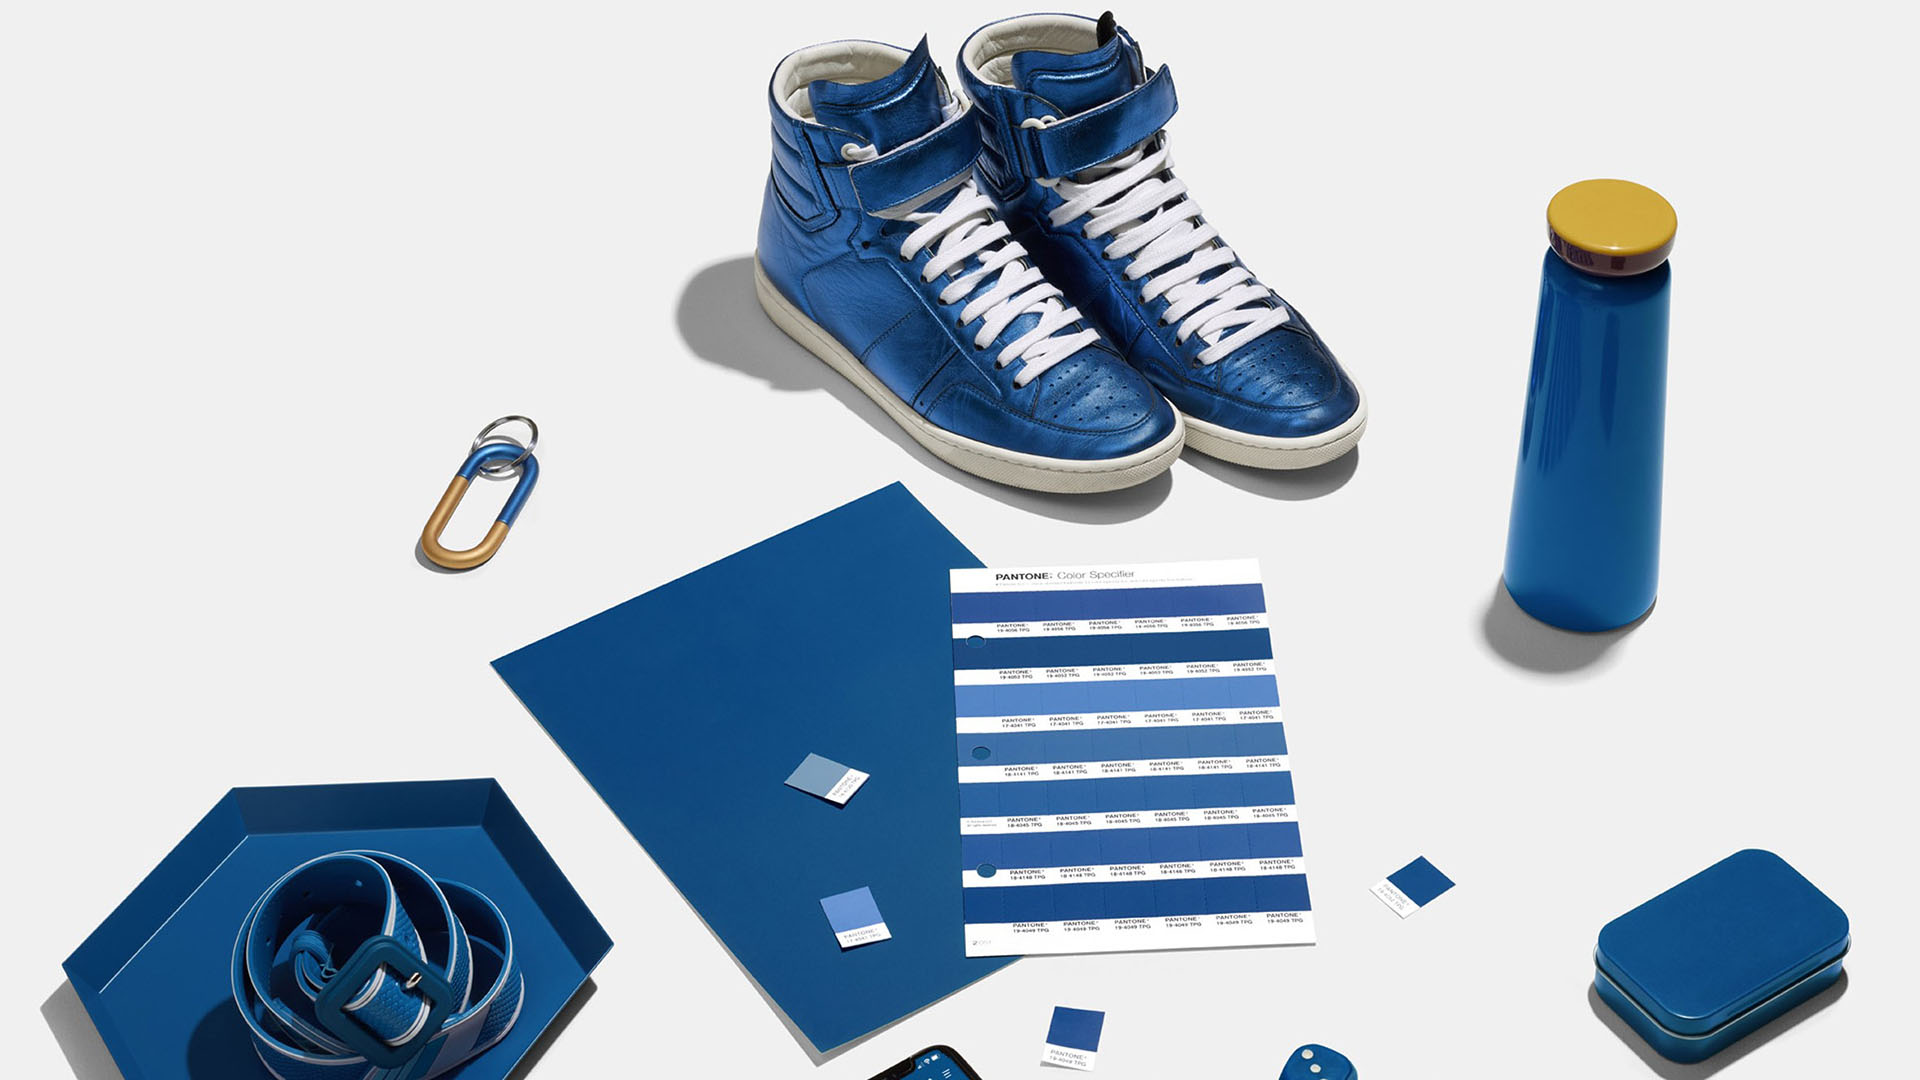 PANTONE – from the hermetic printing industry to the world of pop culture and all creation